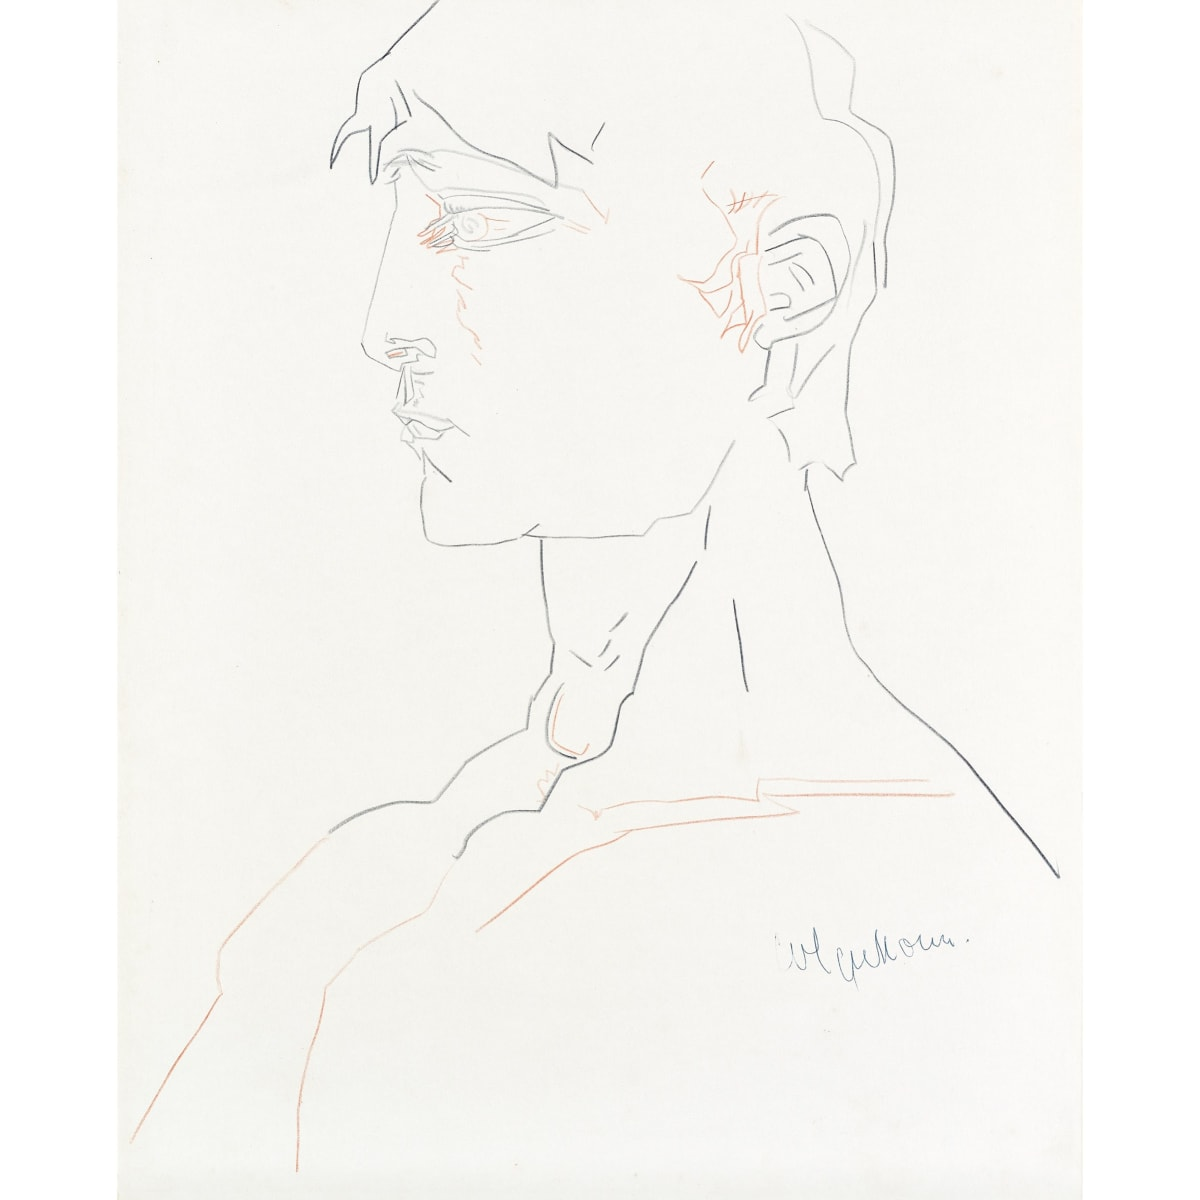 Robert Colquhoun Head of a Man in Profile, c.1959 c.1959; signed charcoal and chalk 19 3/4 x 15 3/4 inches